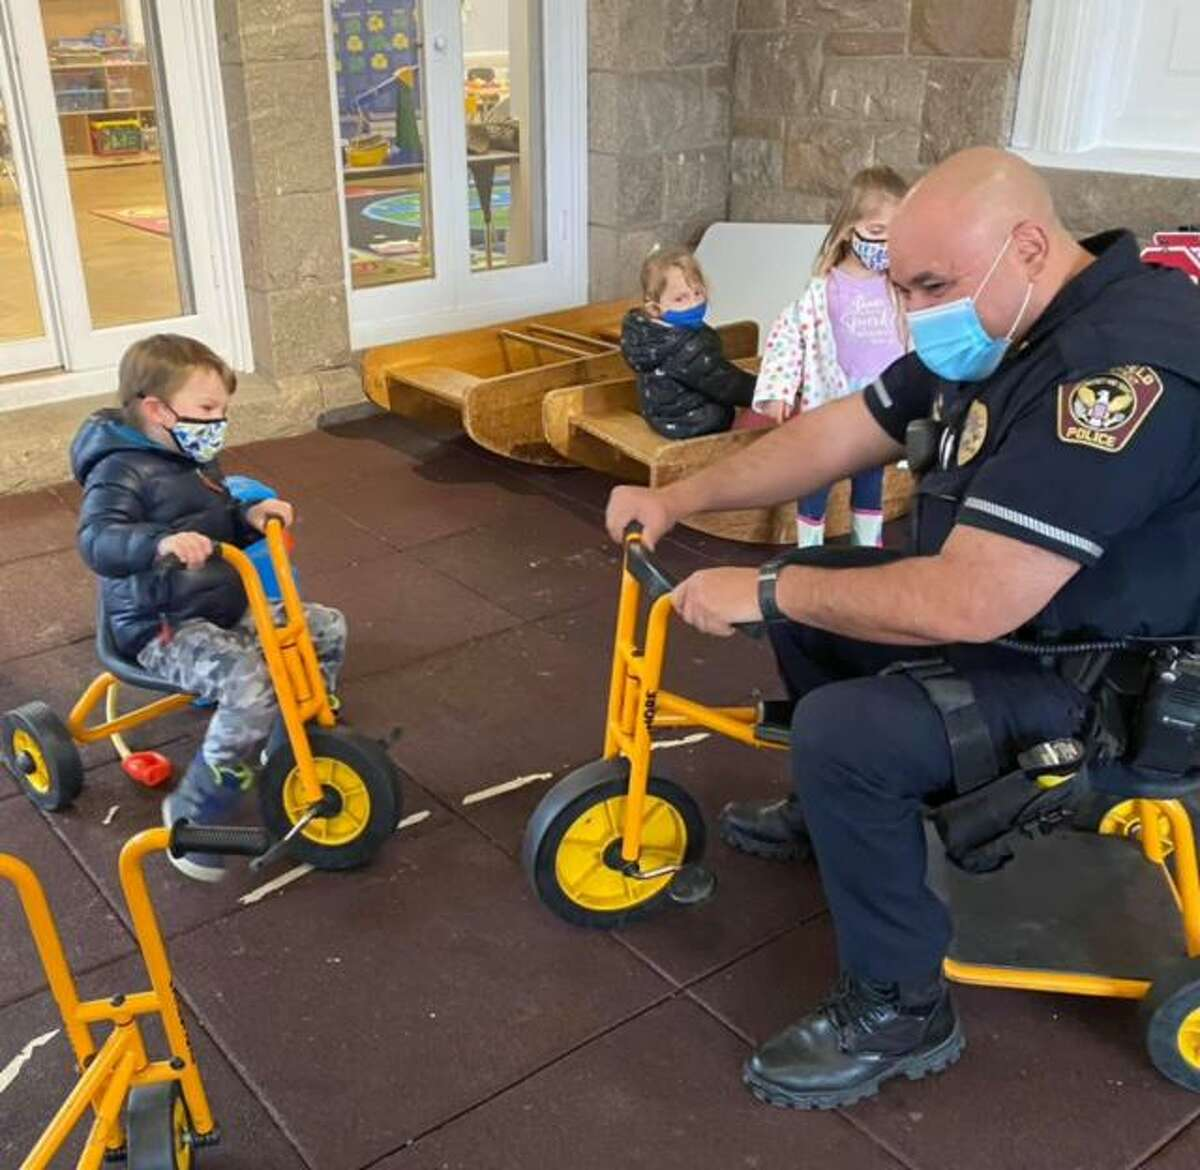 Ridgefield Police Officer Luis Caba rides a student bicycle at the Jesse Lee Day School while giving a safety talk to the children on March 18, 2021.